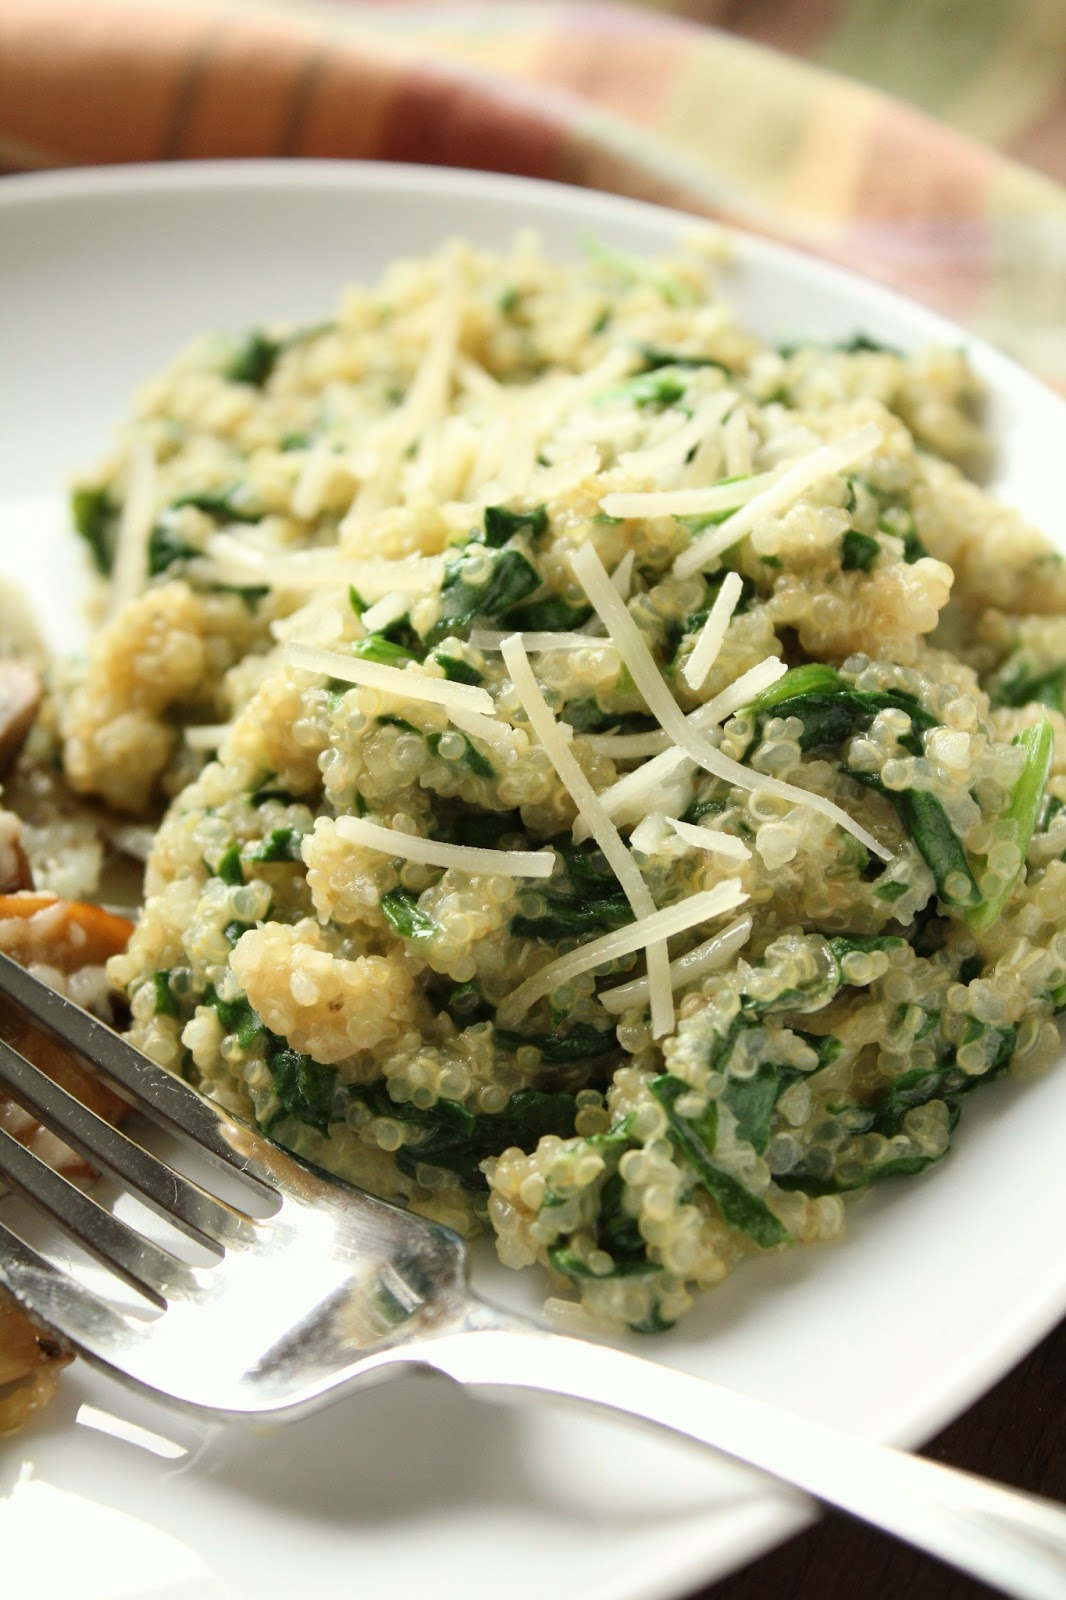 ... adapted from allrecipes com cheesy quinoa pilaf with spinach serves 4